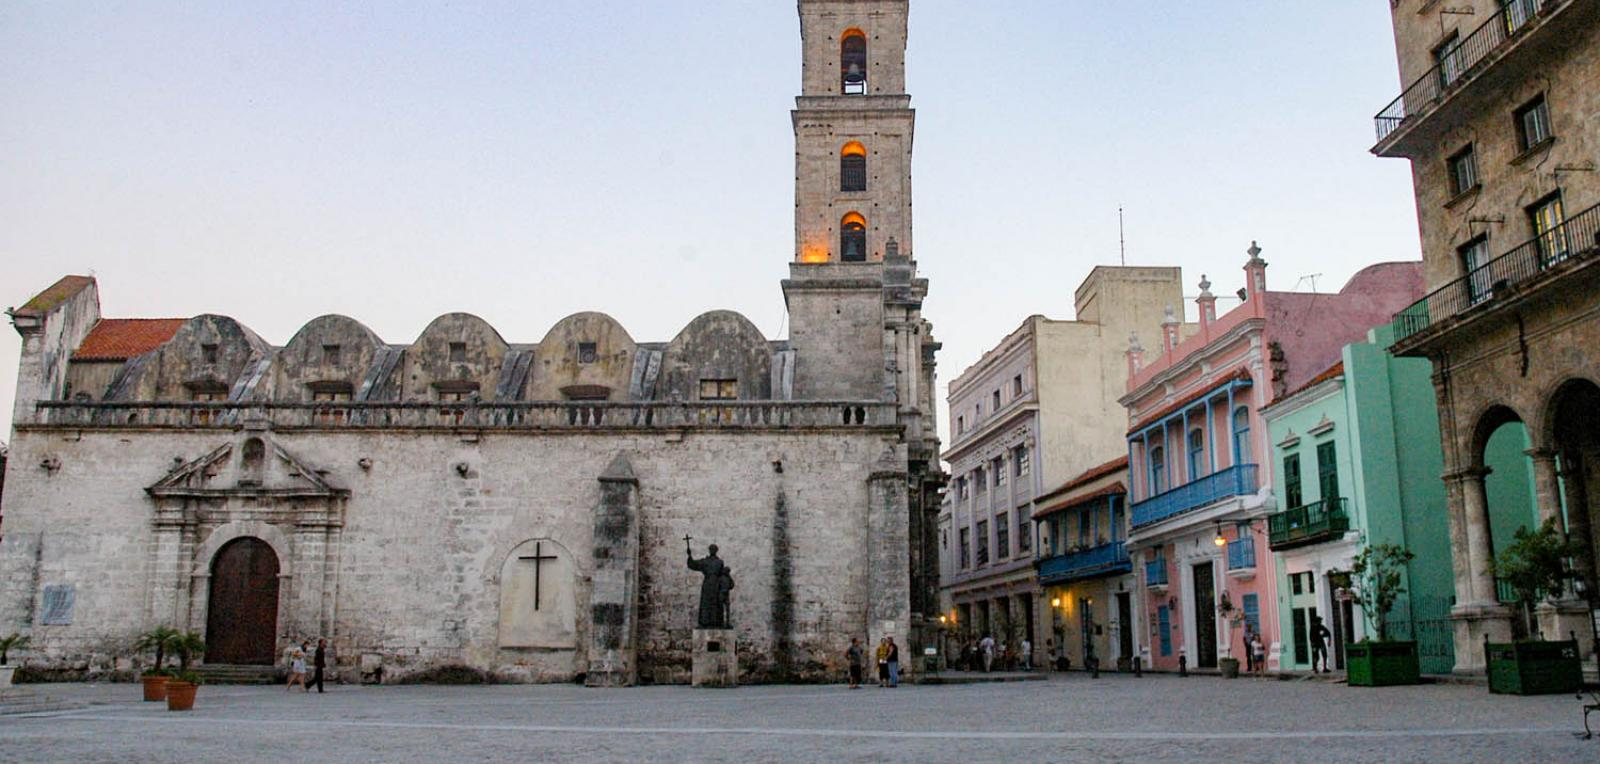 The San Francisco de Asís Square, witness to history